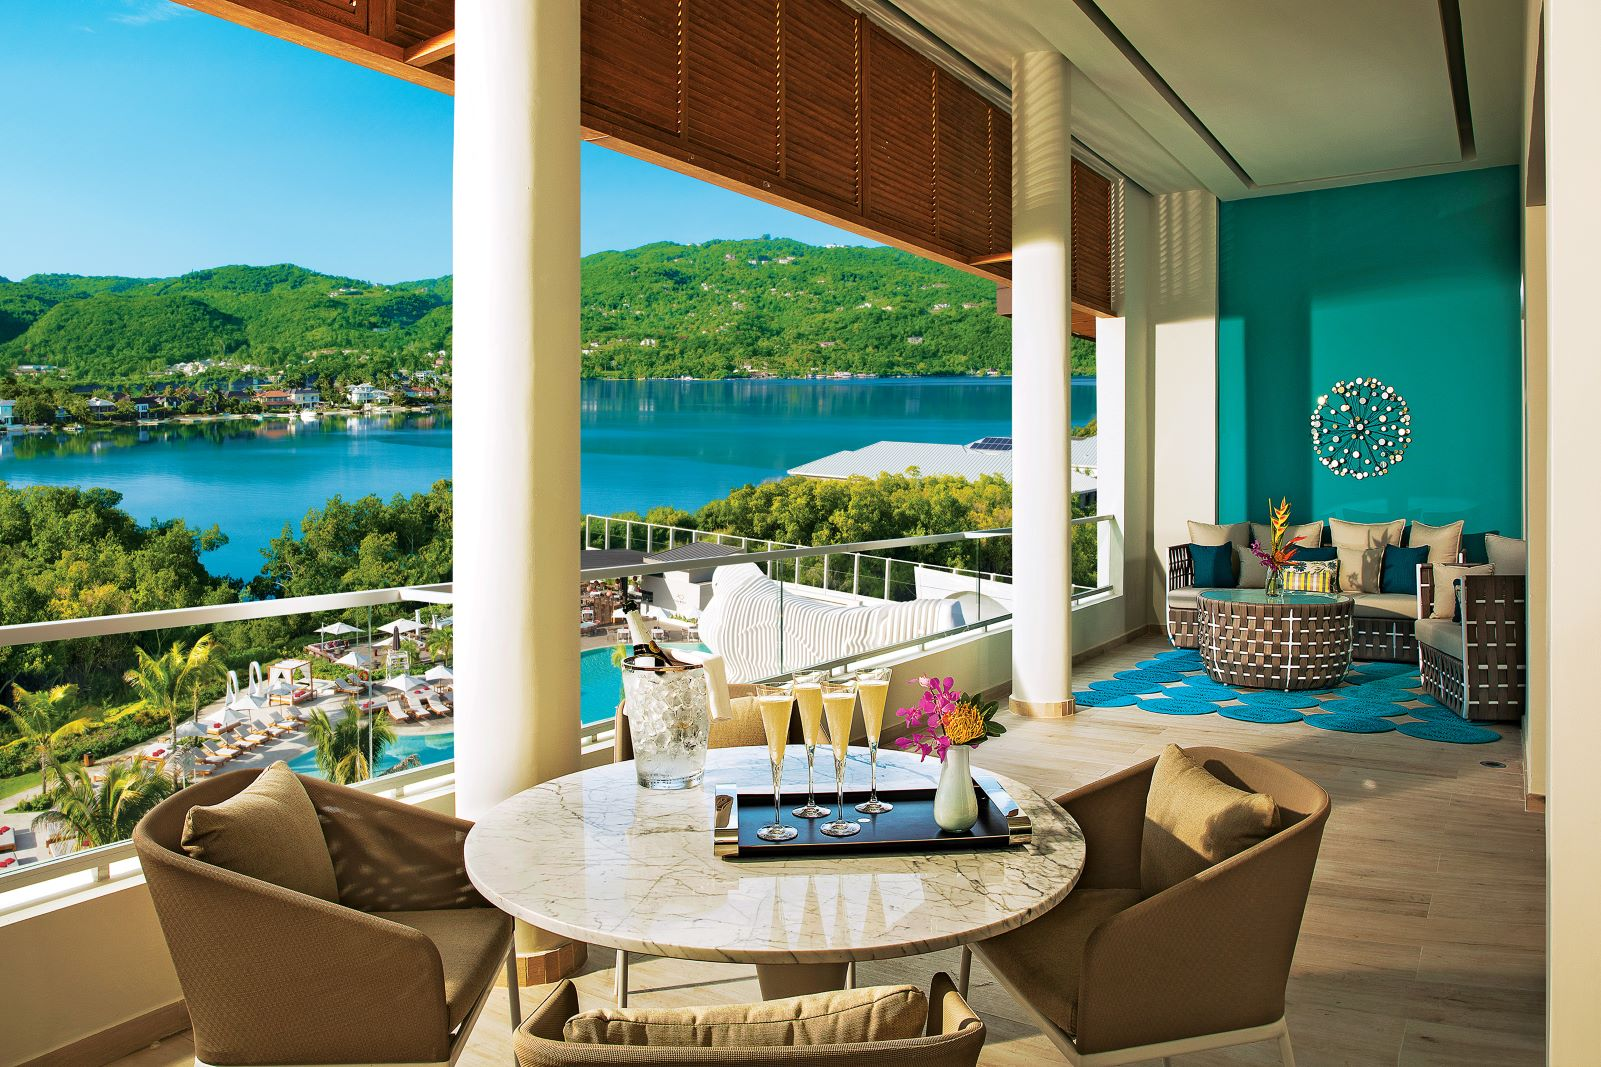 Colorfully private furnished Balcony with small dinette table with champagne flutes and bottle, plus sitting area on the right side of the terrace, overlooking the hotel pool area and bay.